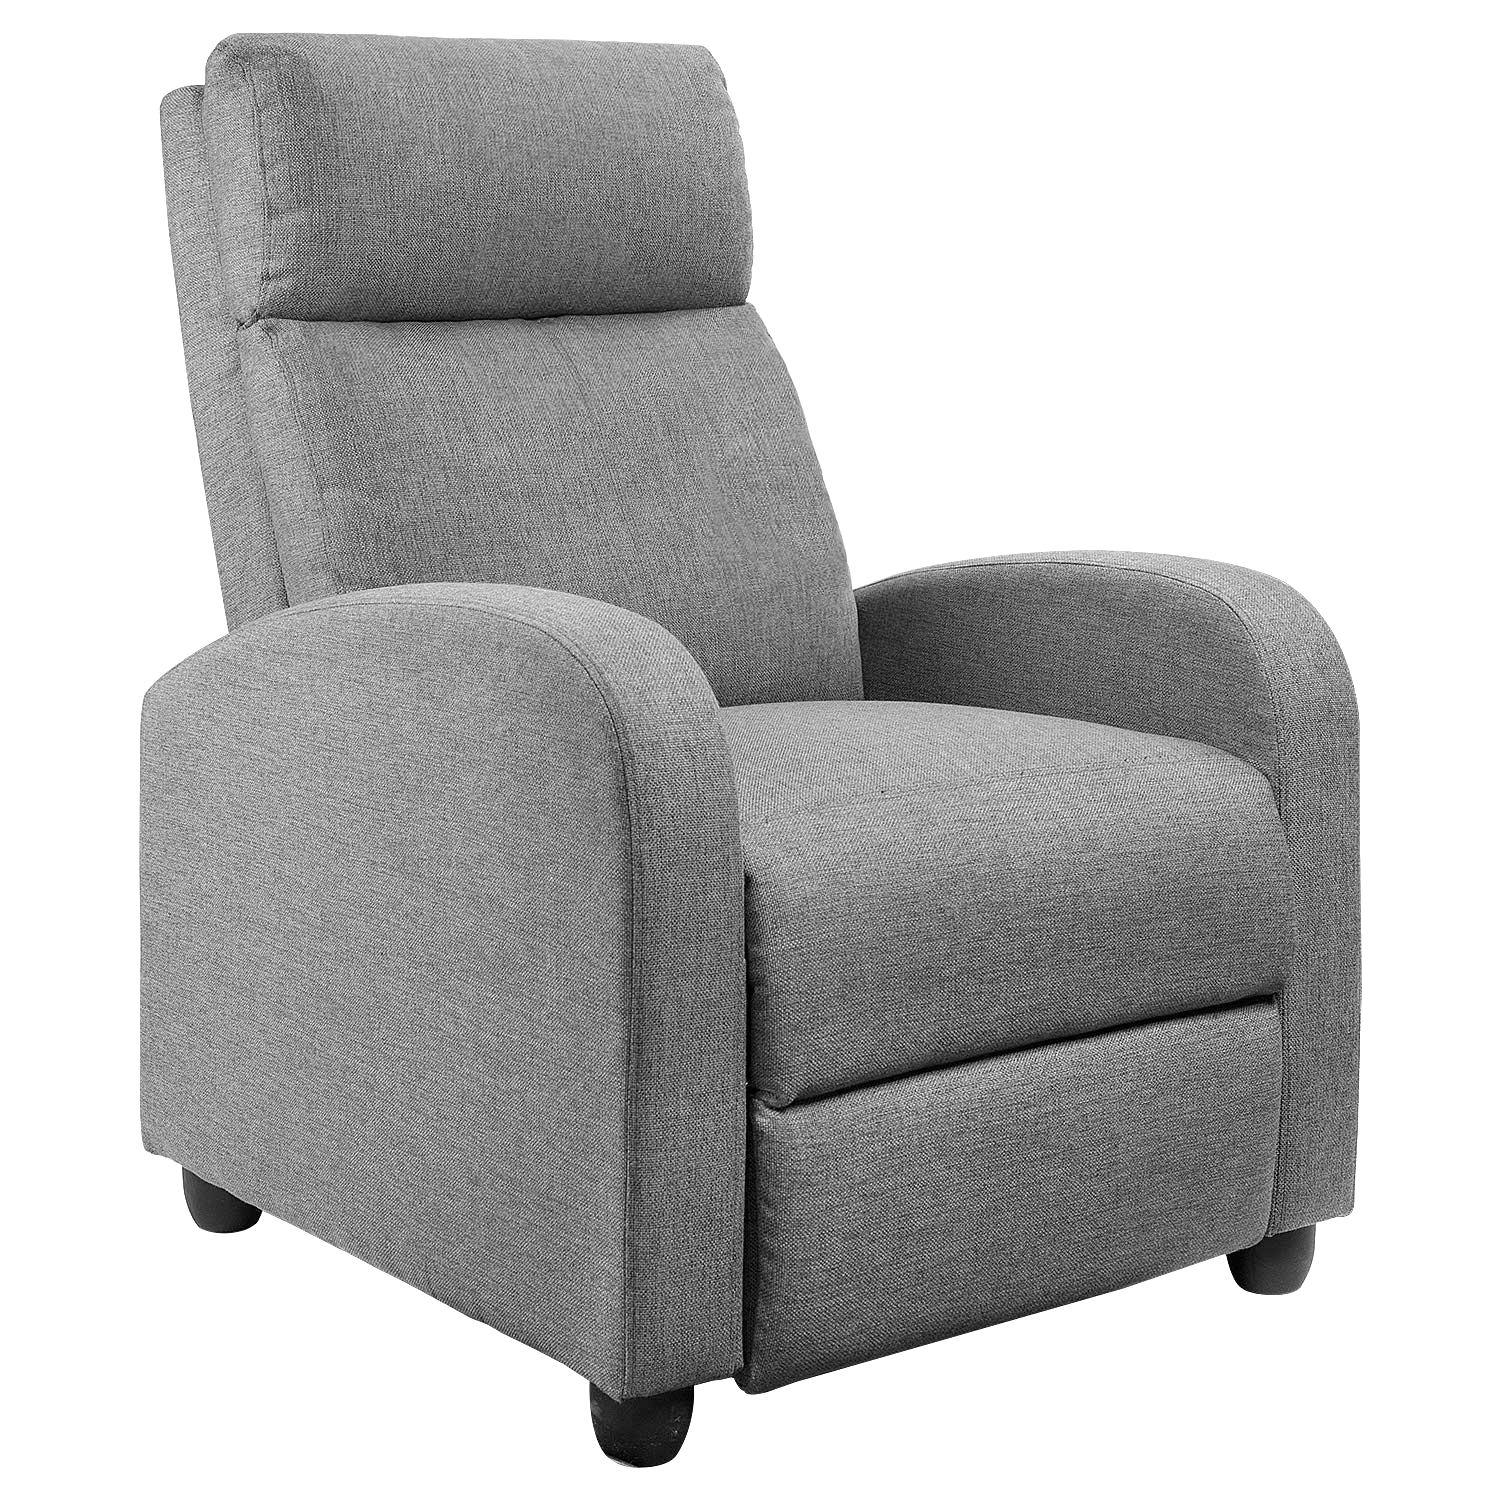 Jummico Fabric Recliner